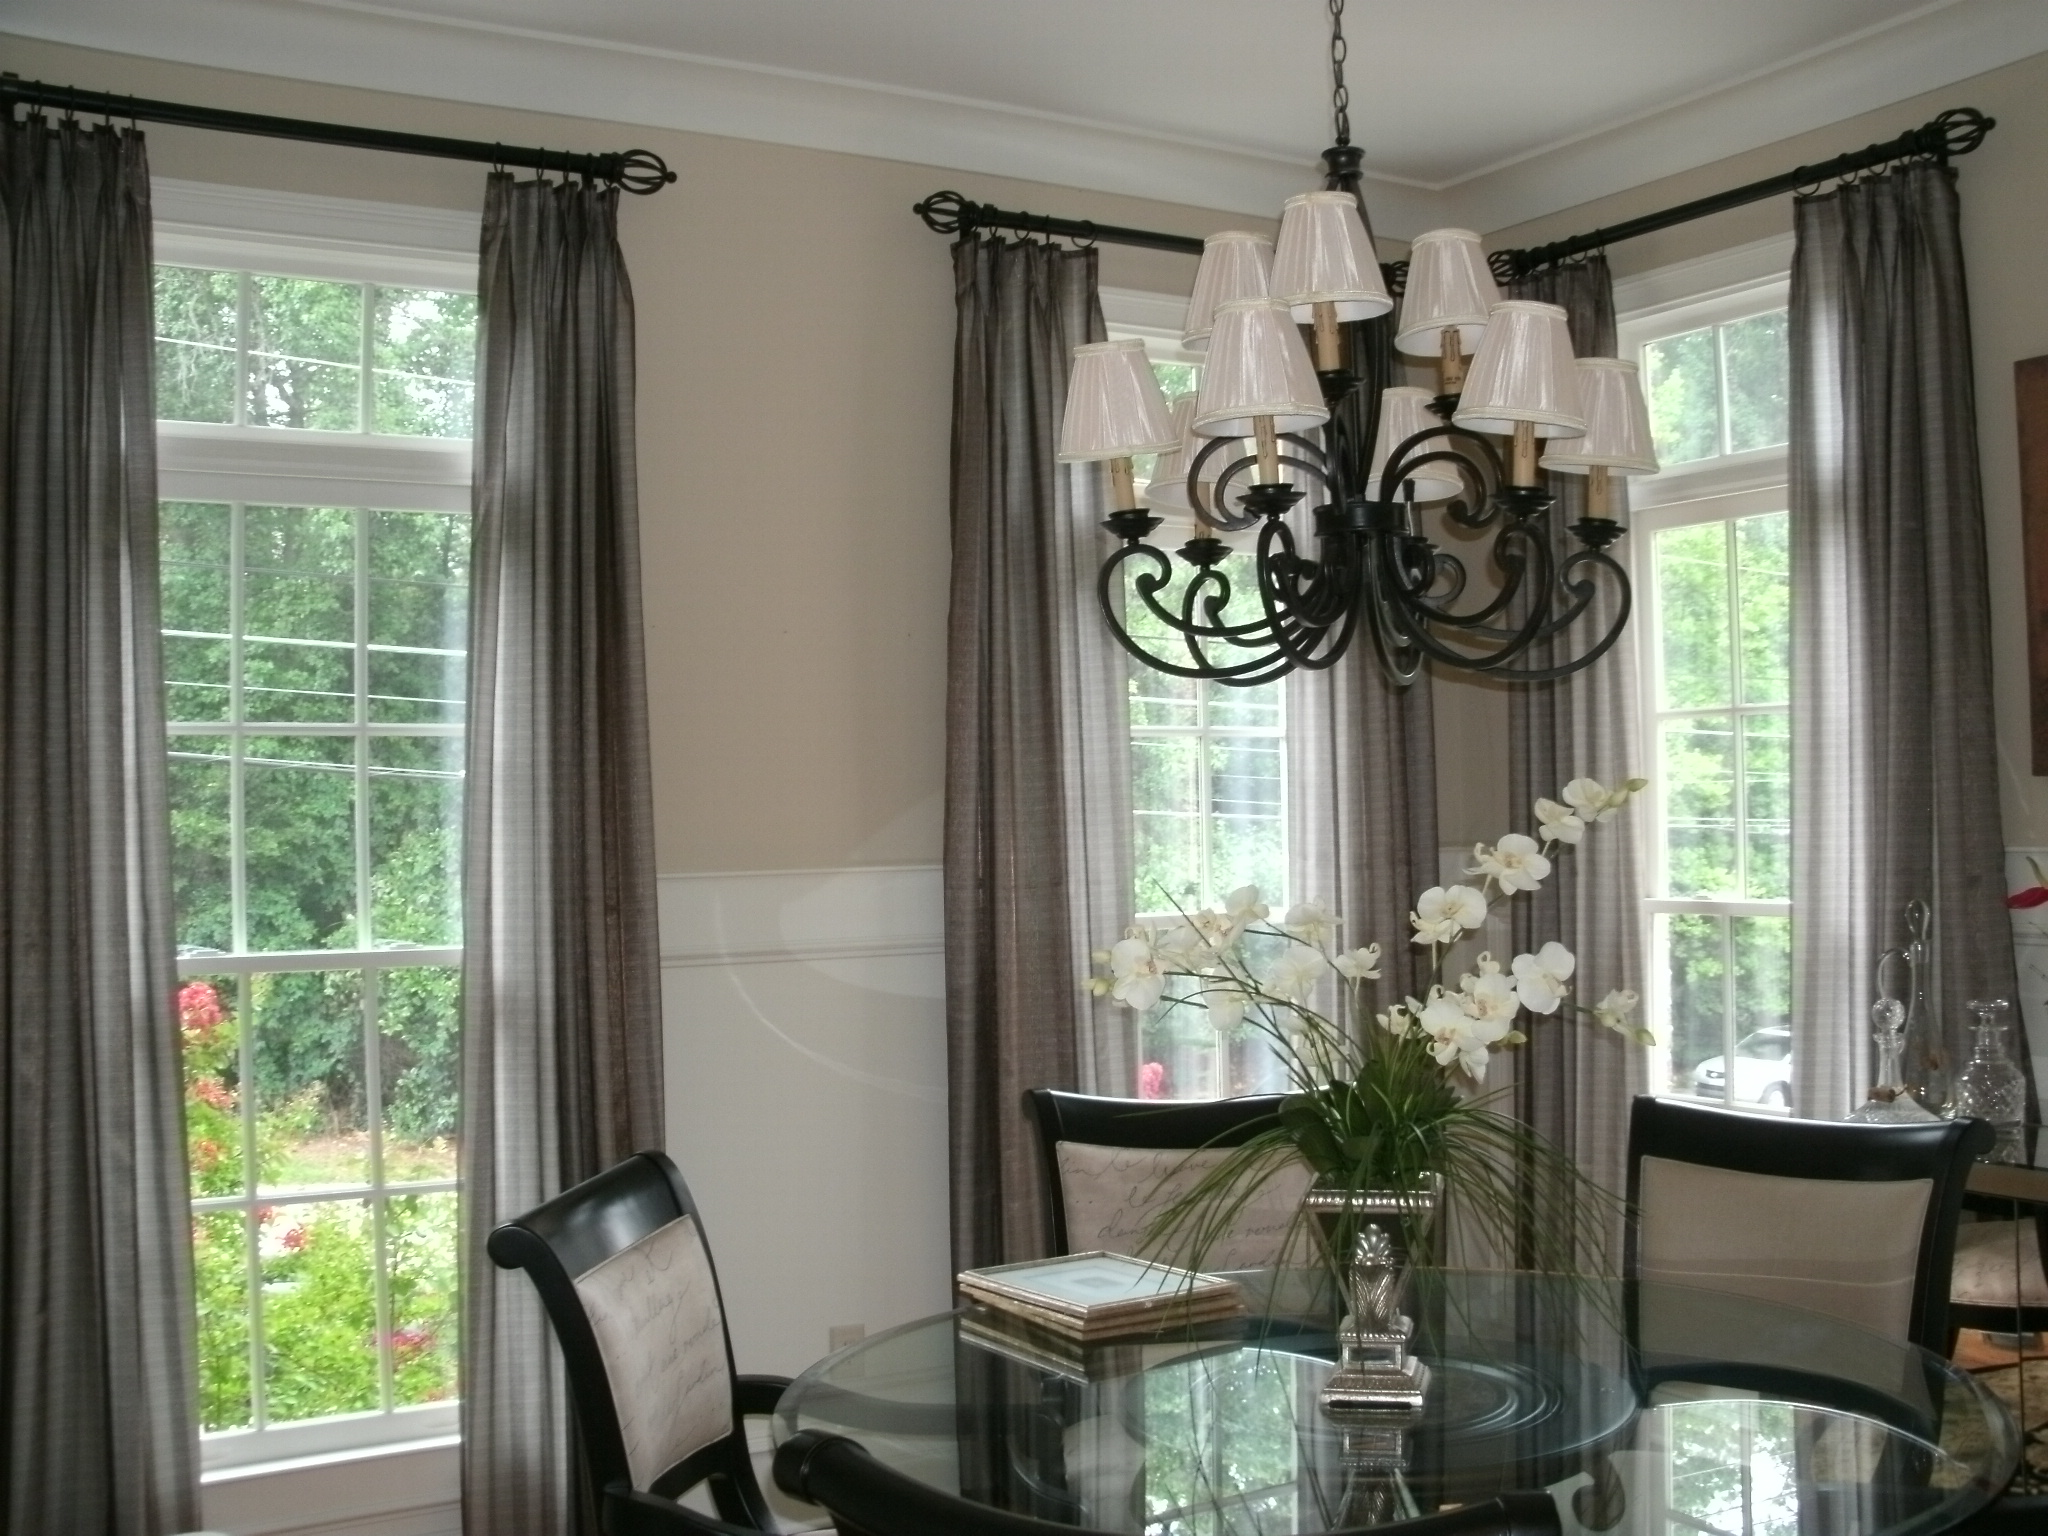 Custom Blinds Drapery Shades Interior Design Atlanta Georgia